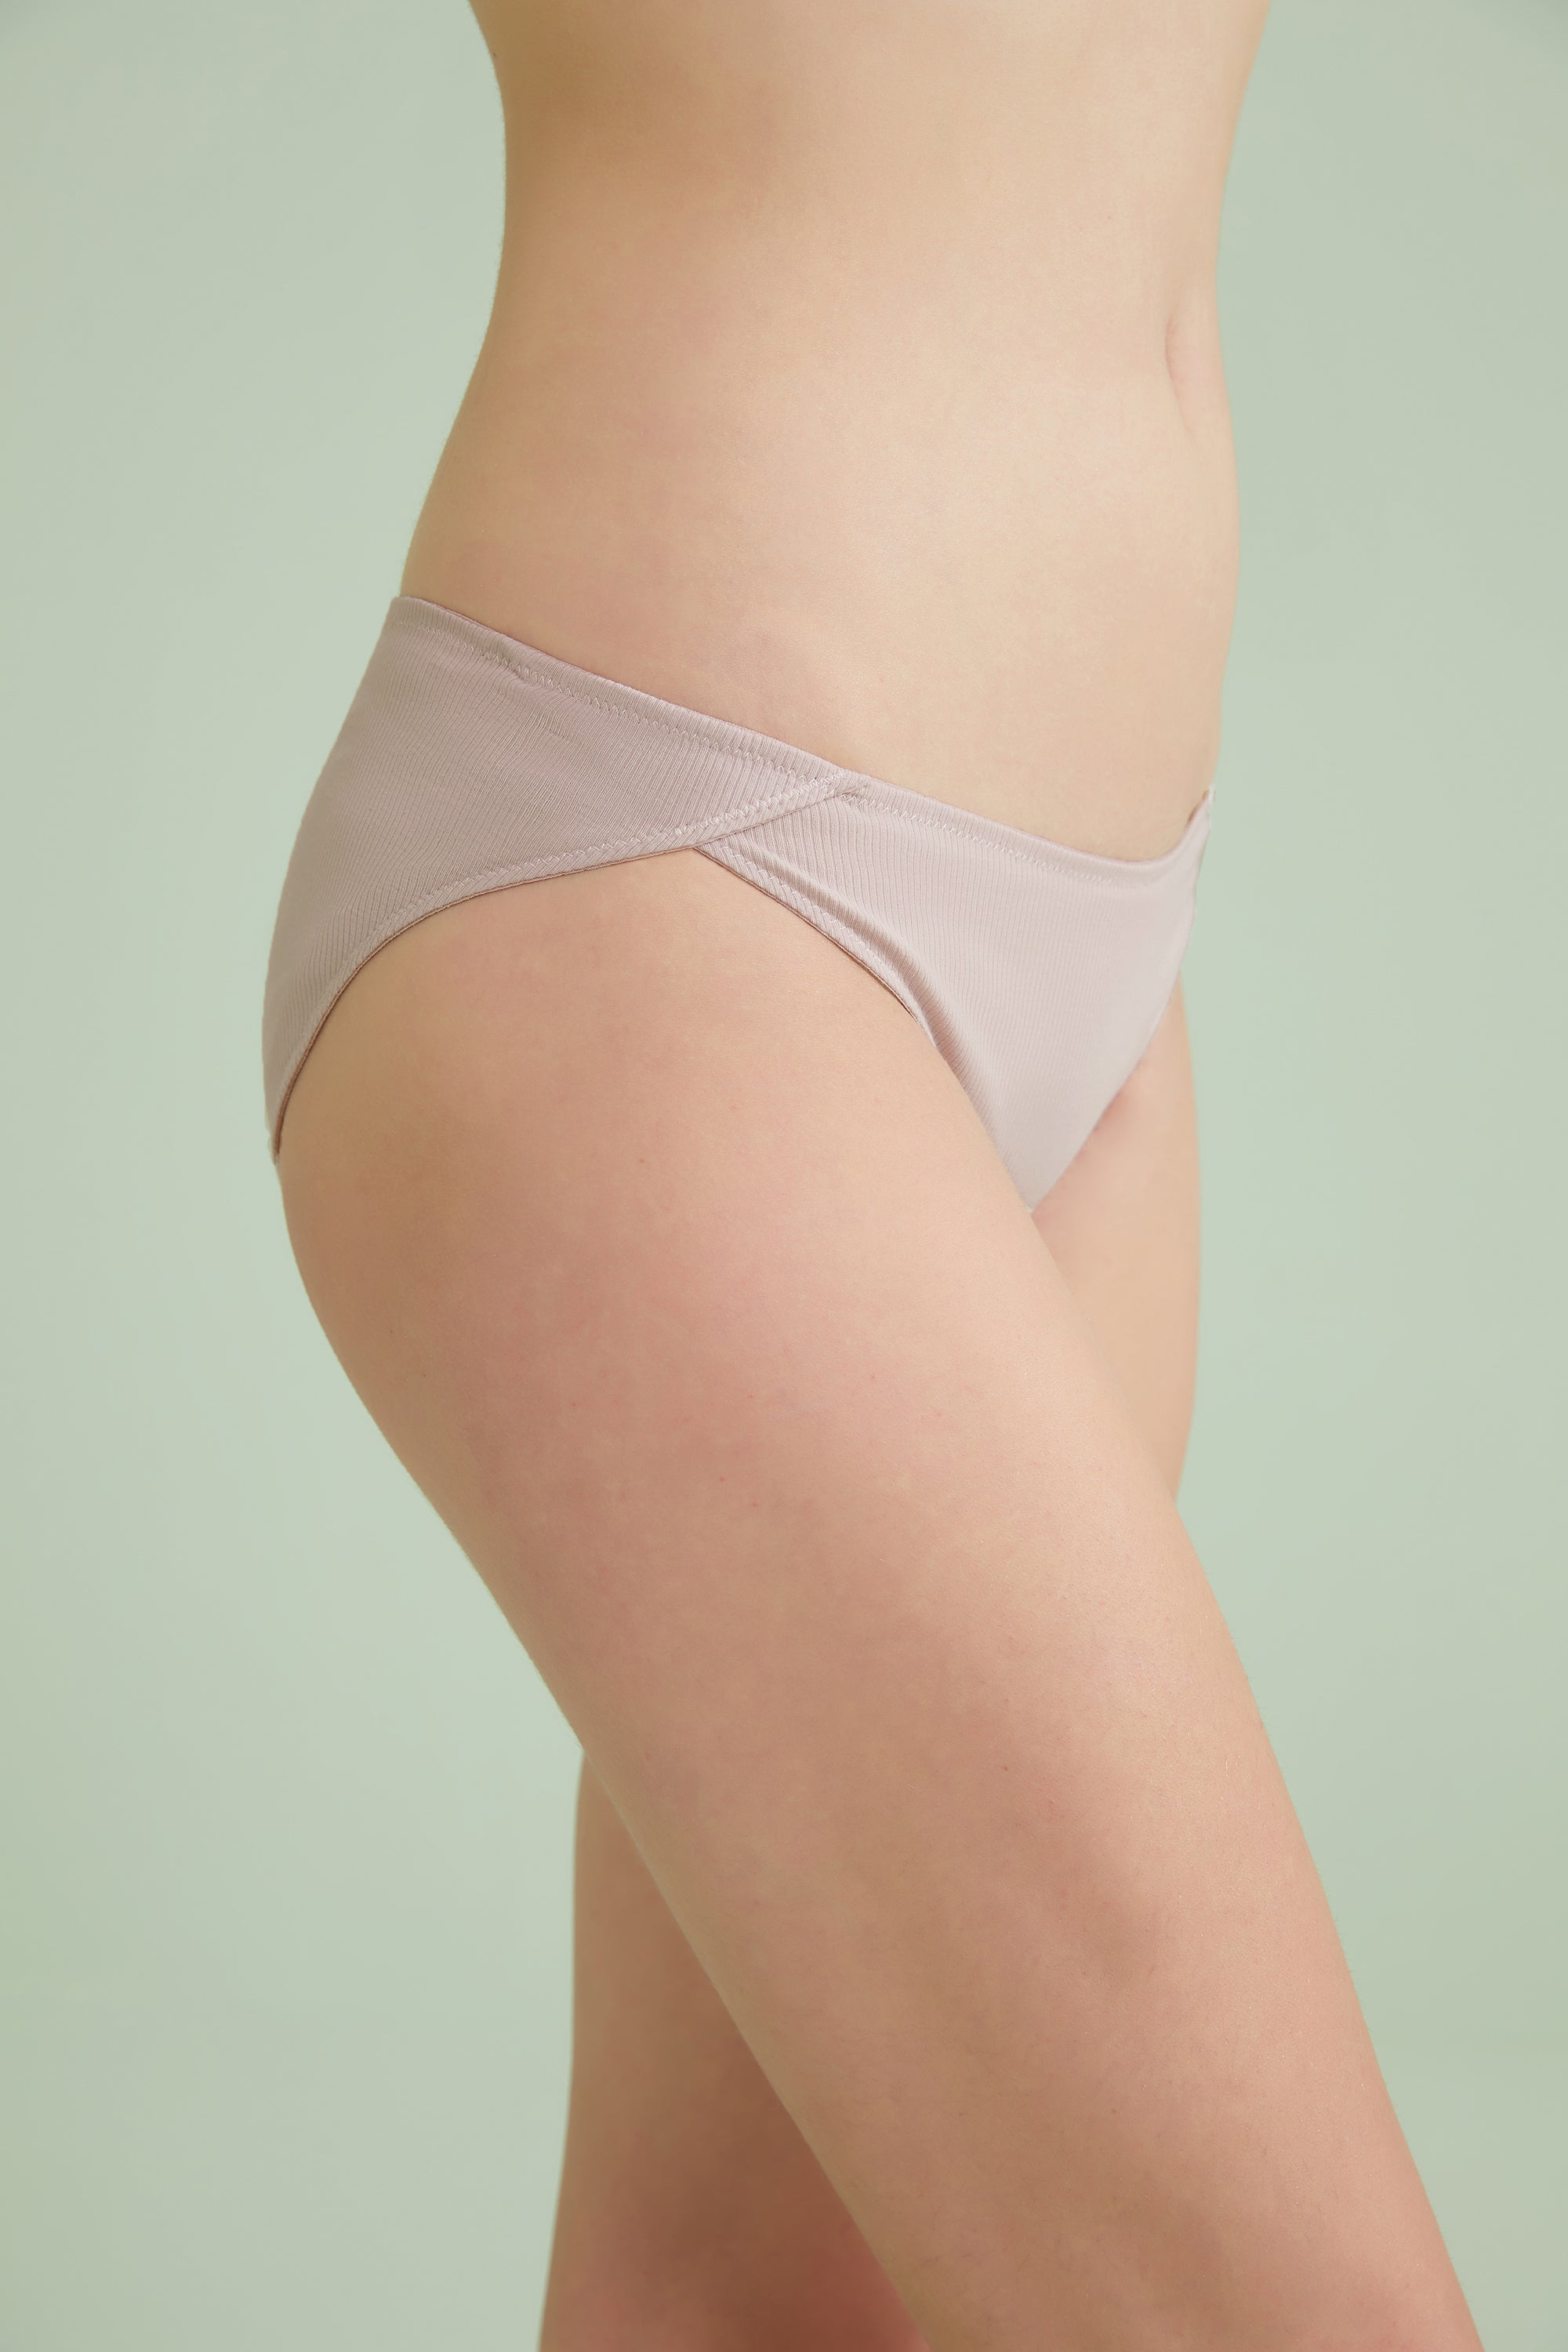 Model wearing NEIWAI's Pure Comfort Ribbed Low Waist Cotton Brief in Pink Nectar.